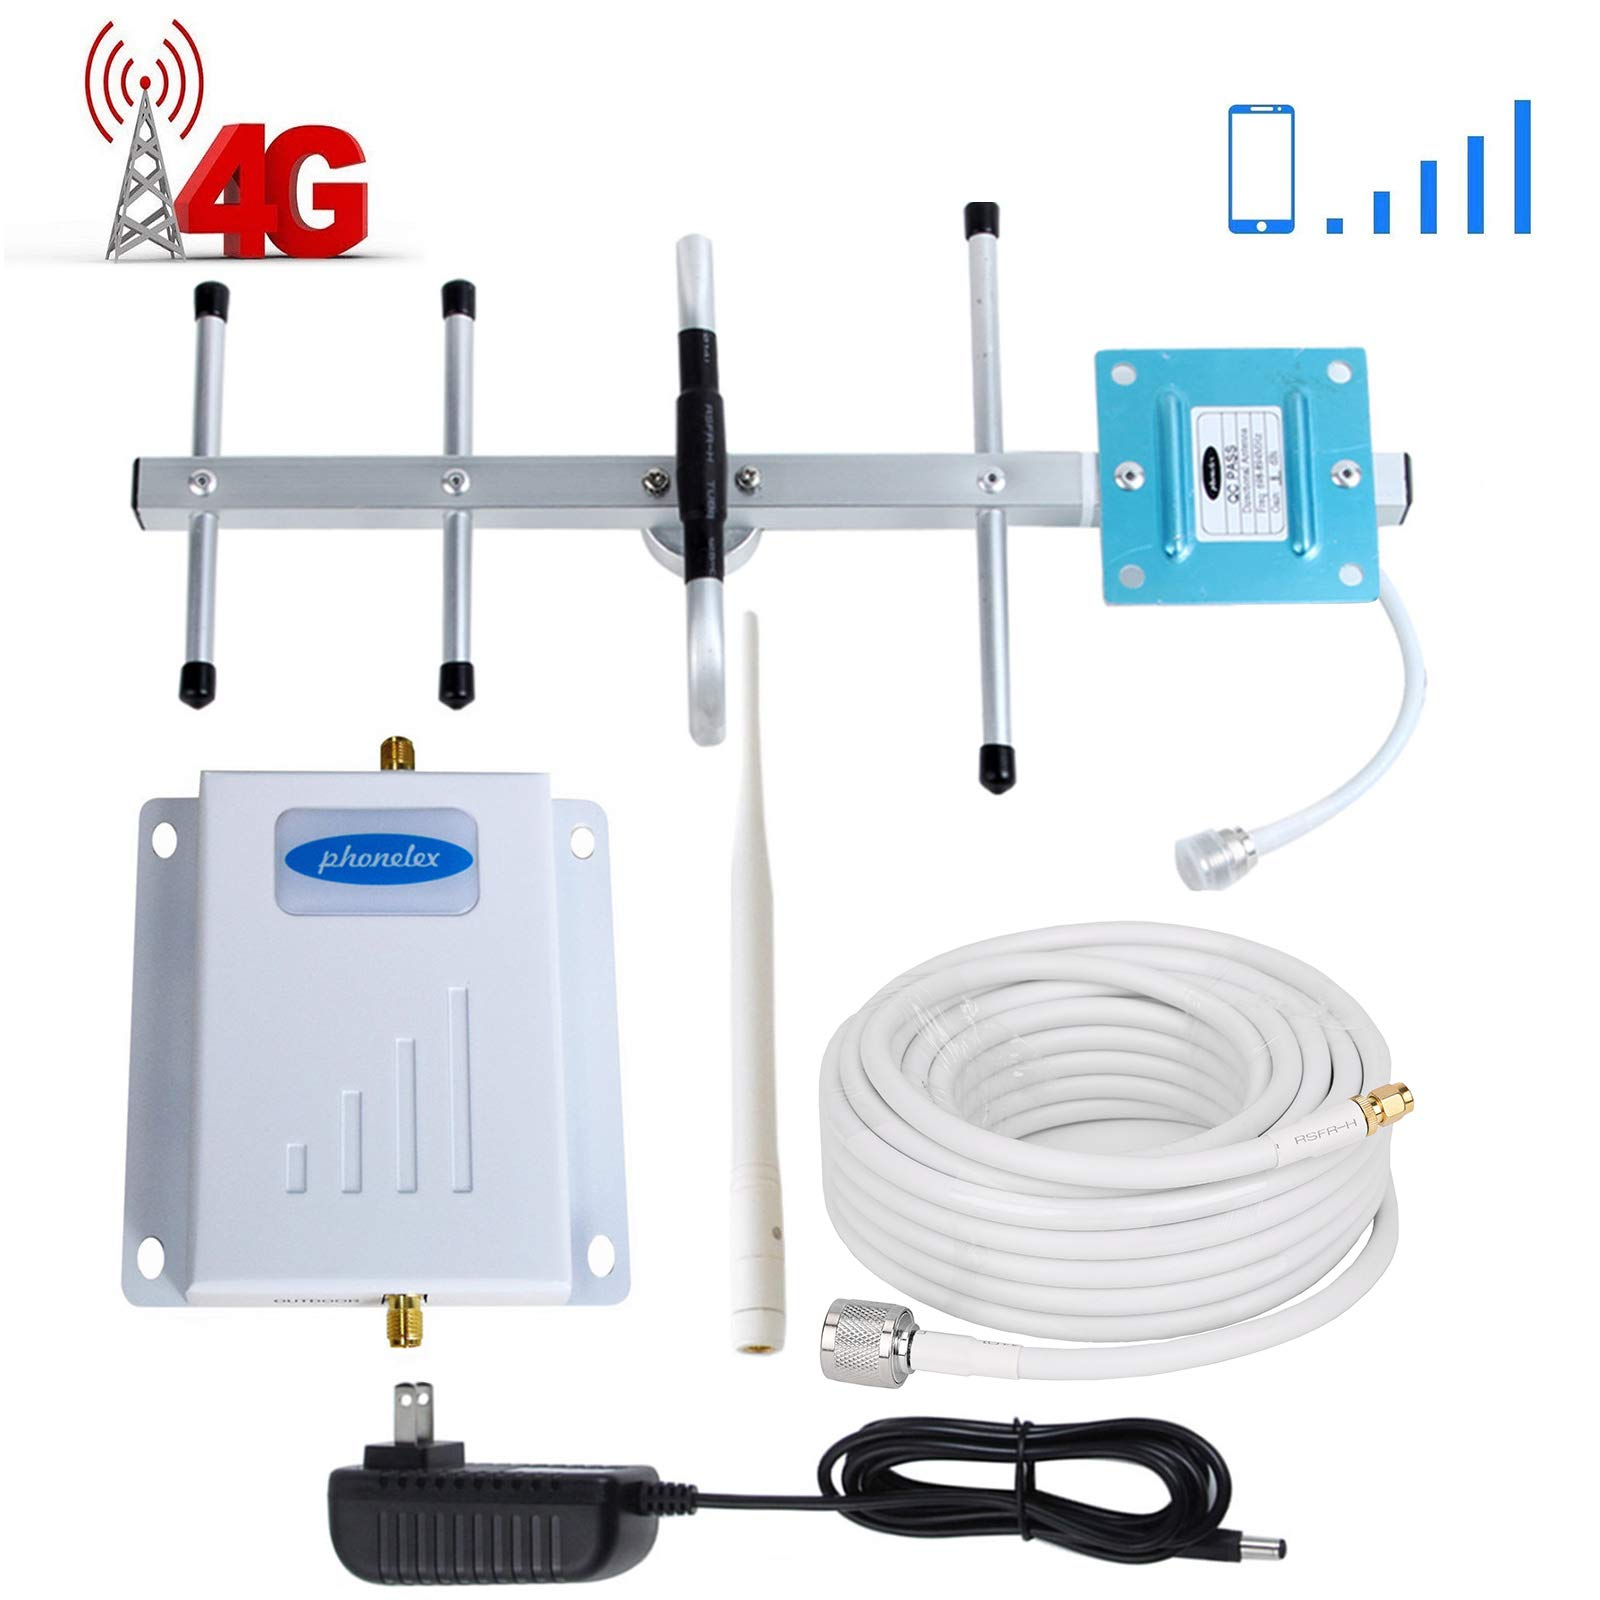 Verizon Cell Phone Signal Booster 4G LTE Phonelex Cell Signal Booster Verizon Cell Phone Signal Amplifier Mobile Phone Signal Booster Repeater Band13 700Mhz FDD with Whip+Yagi Antenna Kits for Home